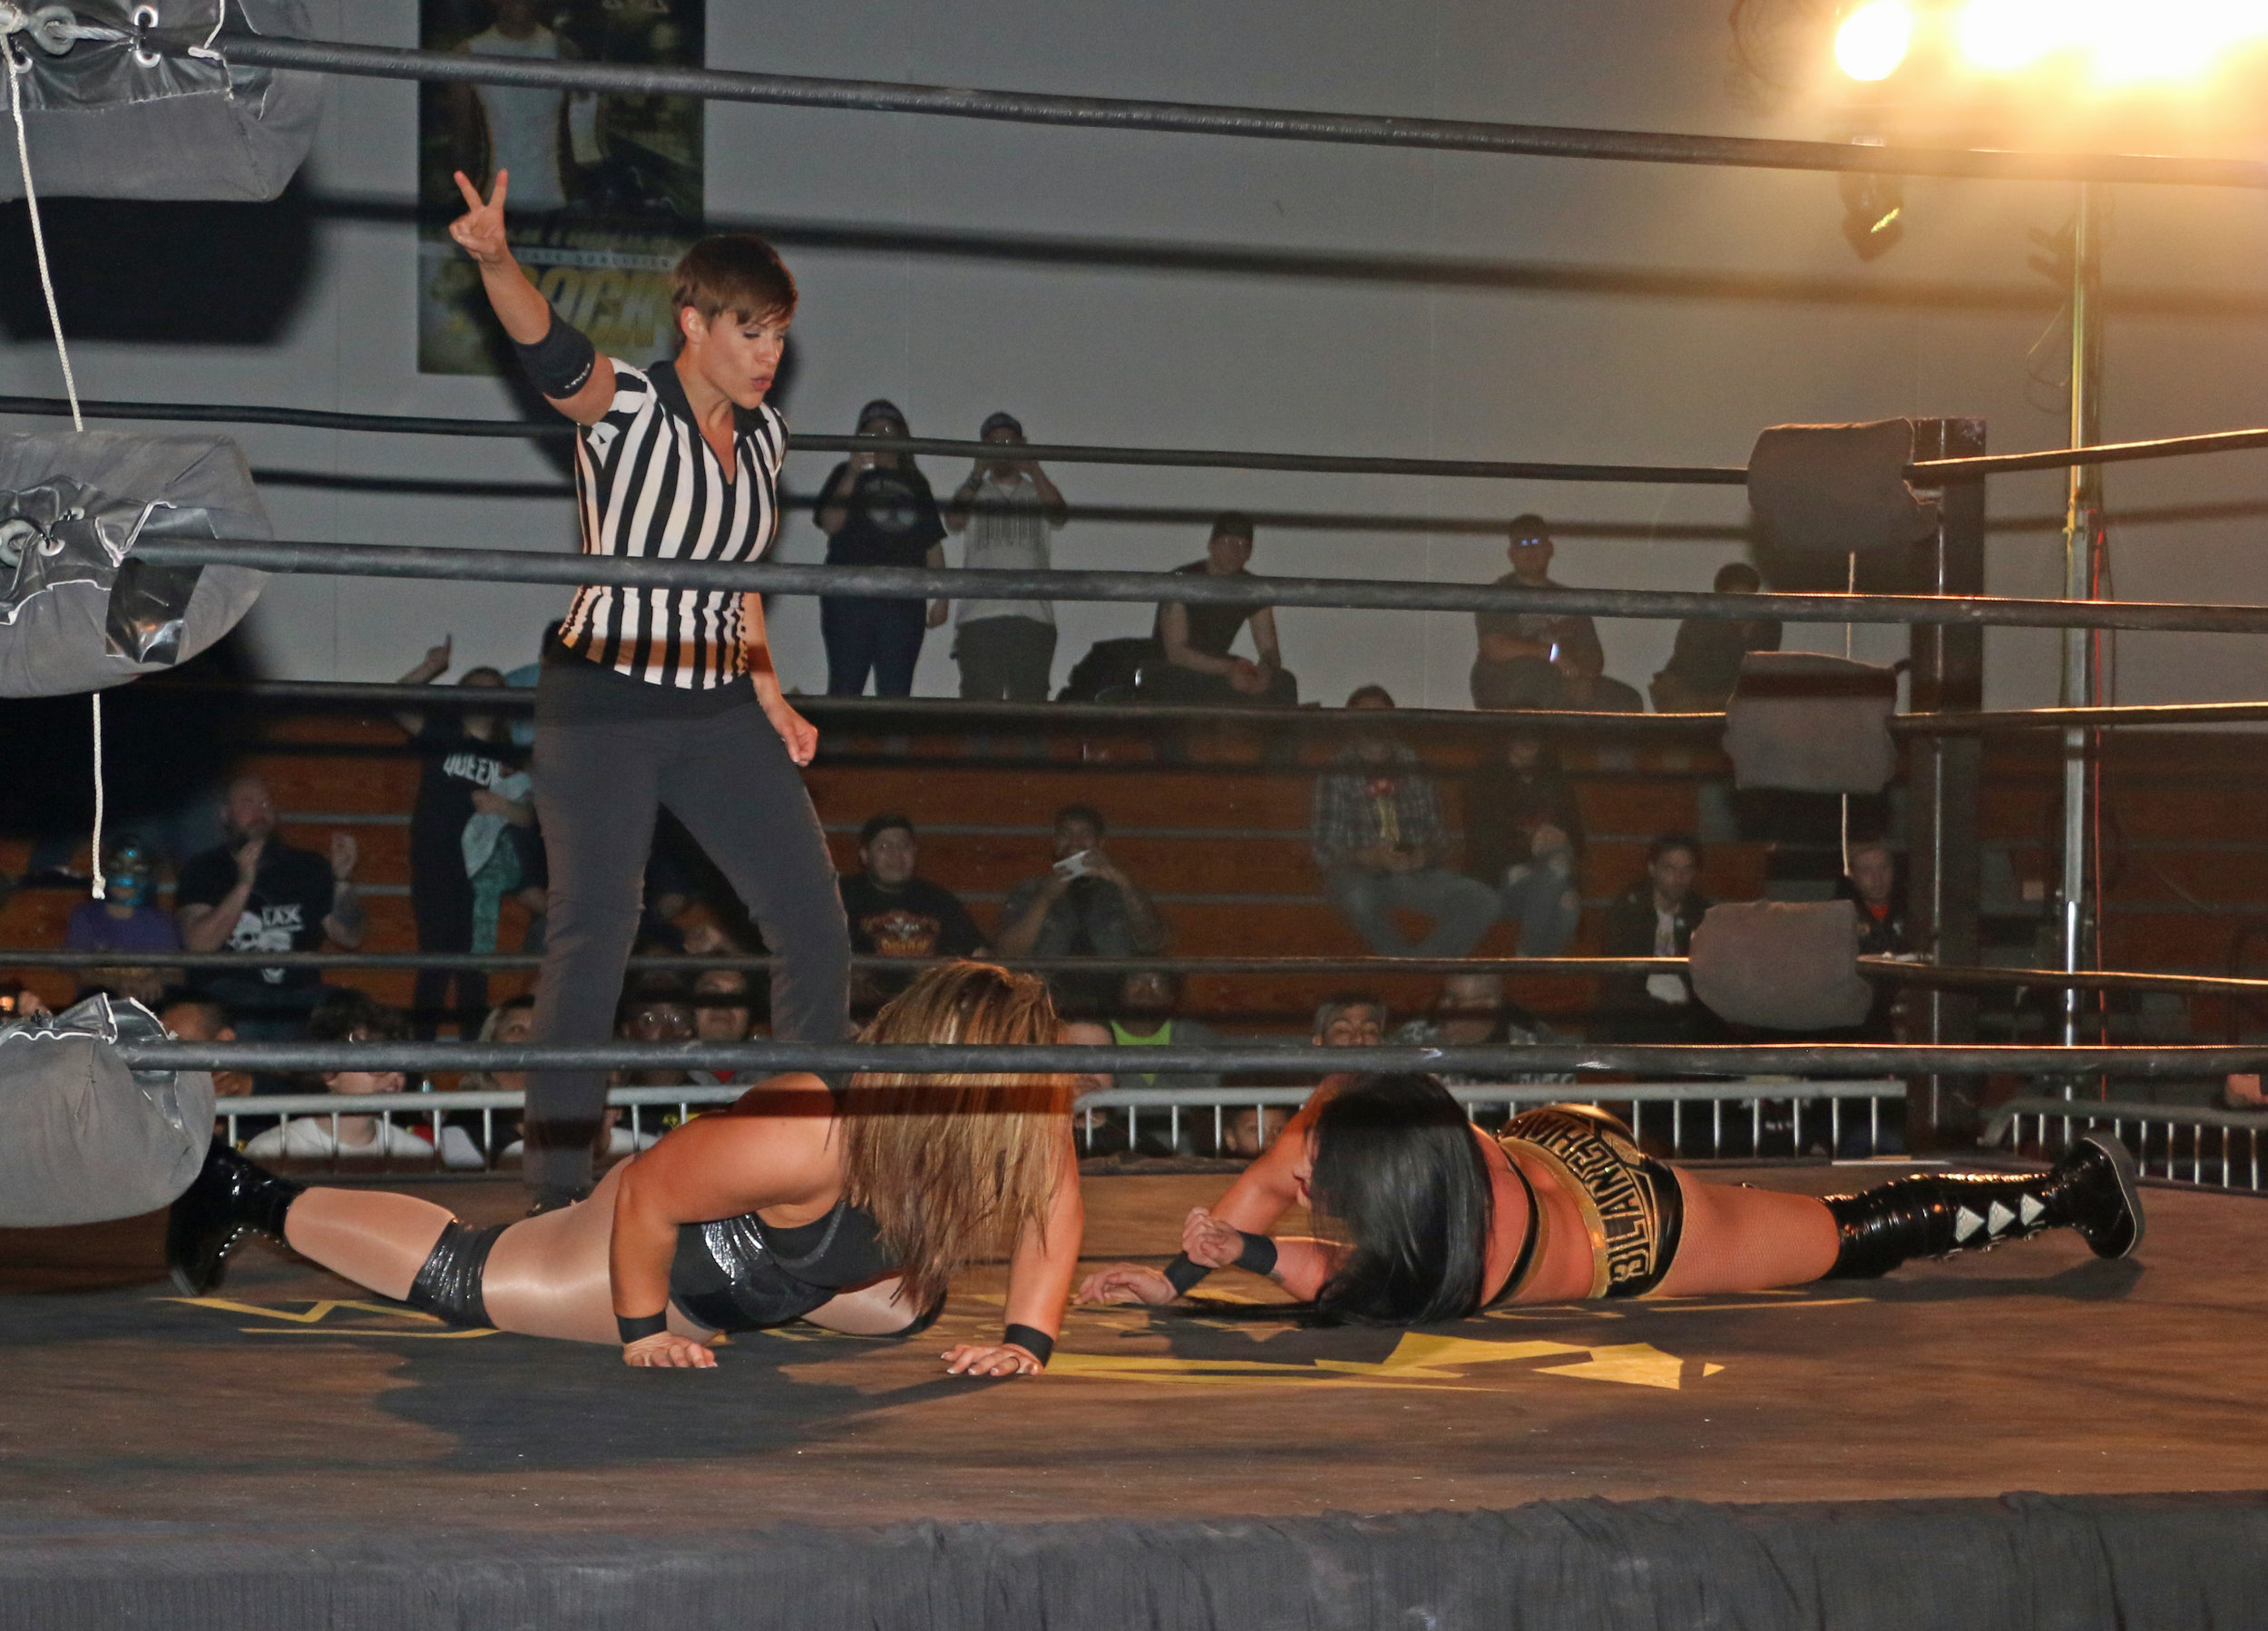 Referee Molly Holly makes the count as both Tessa Blanchard and Jordynne Grace are on the mat.